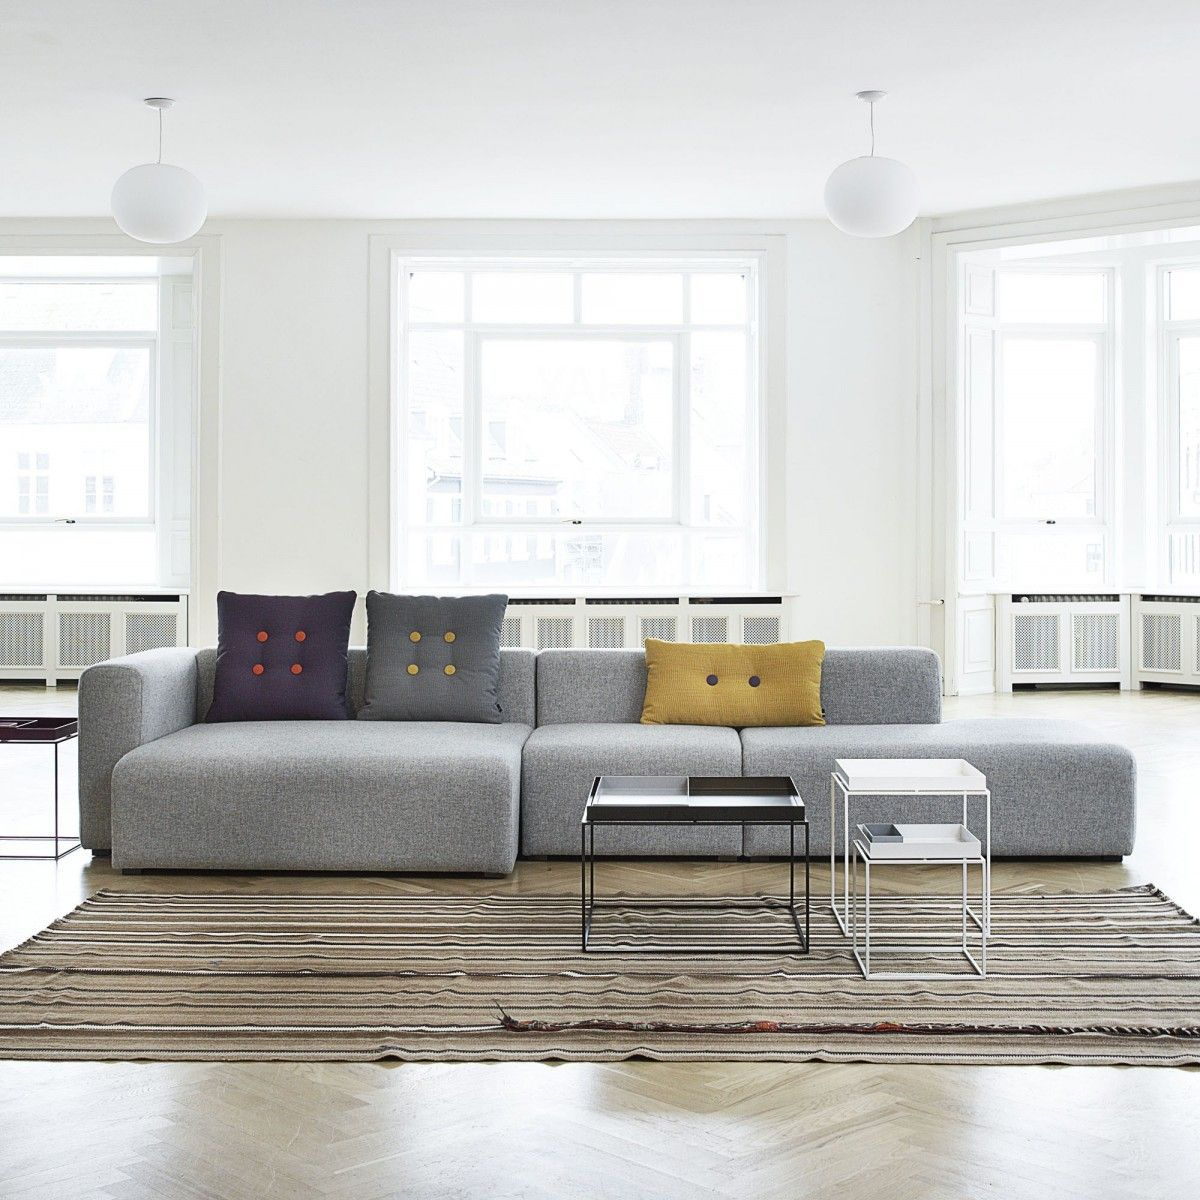 Sieben Fragen An Compose Sofa Home Design Informationen Canapé Mags 02 Hay Bank Sofa Modular Sofa En Hay